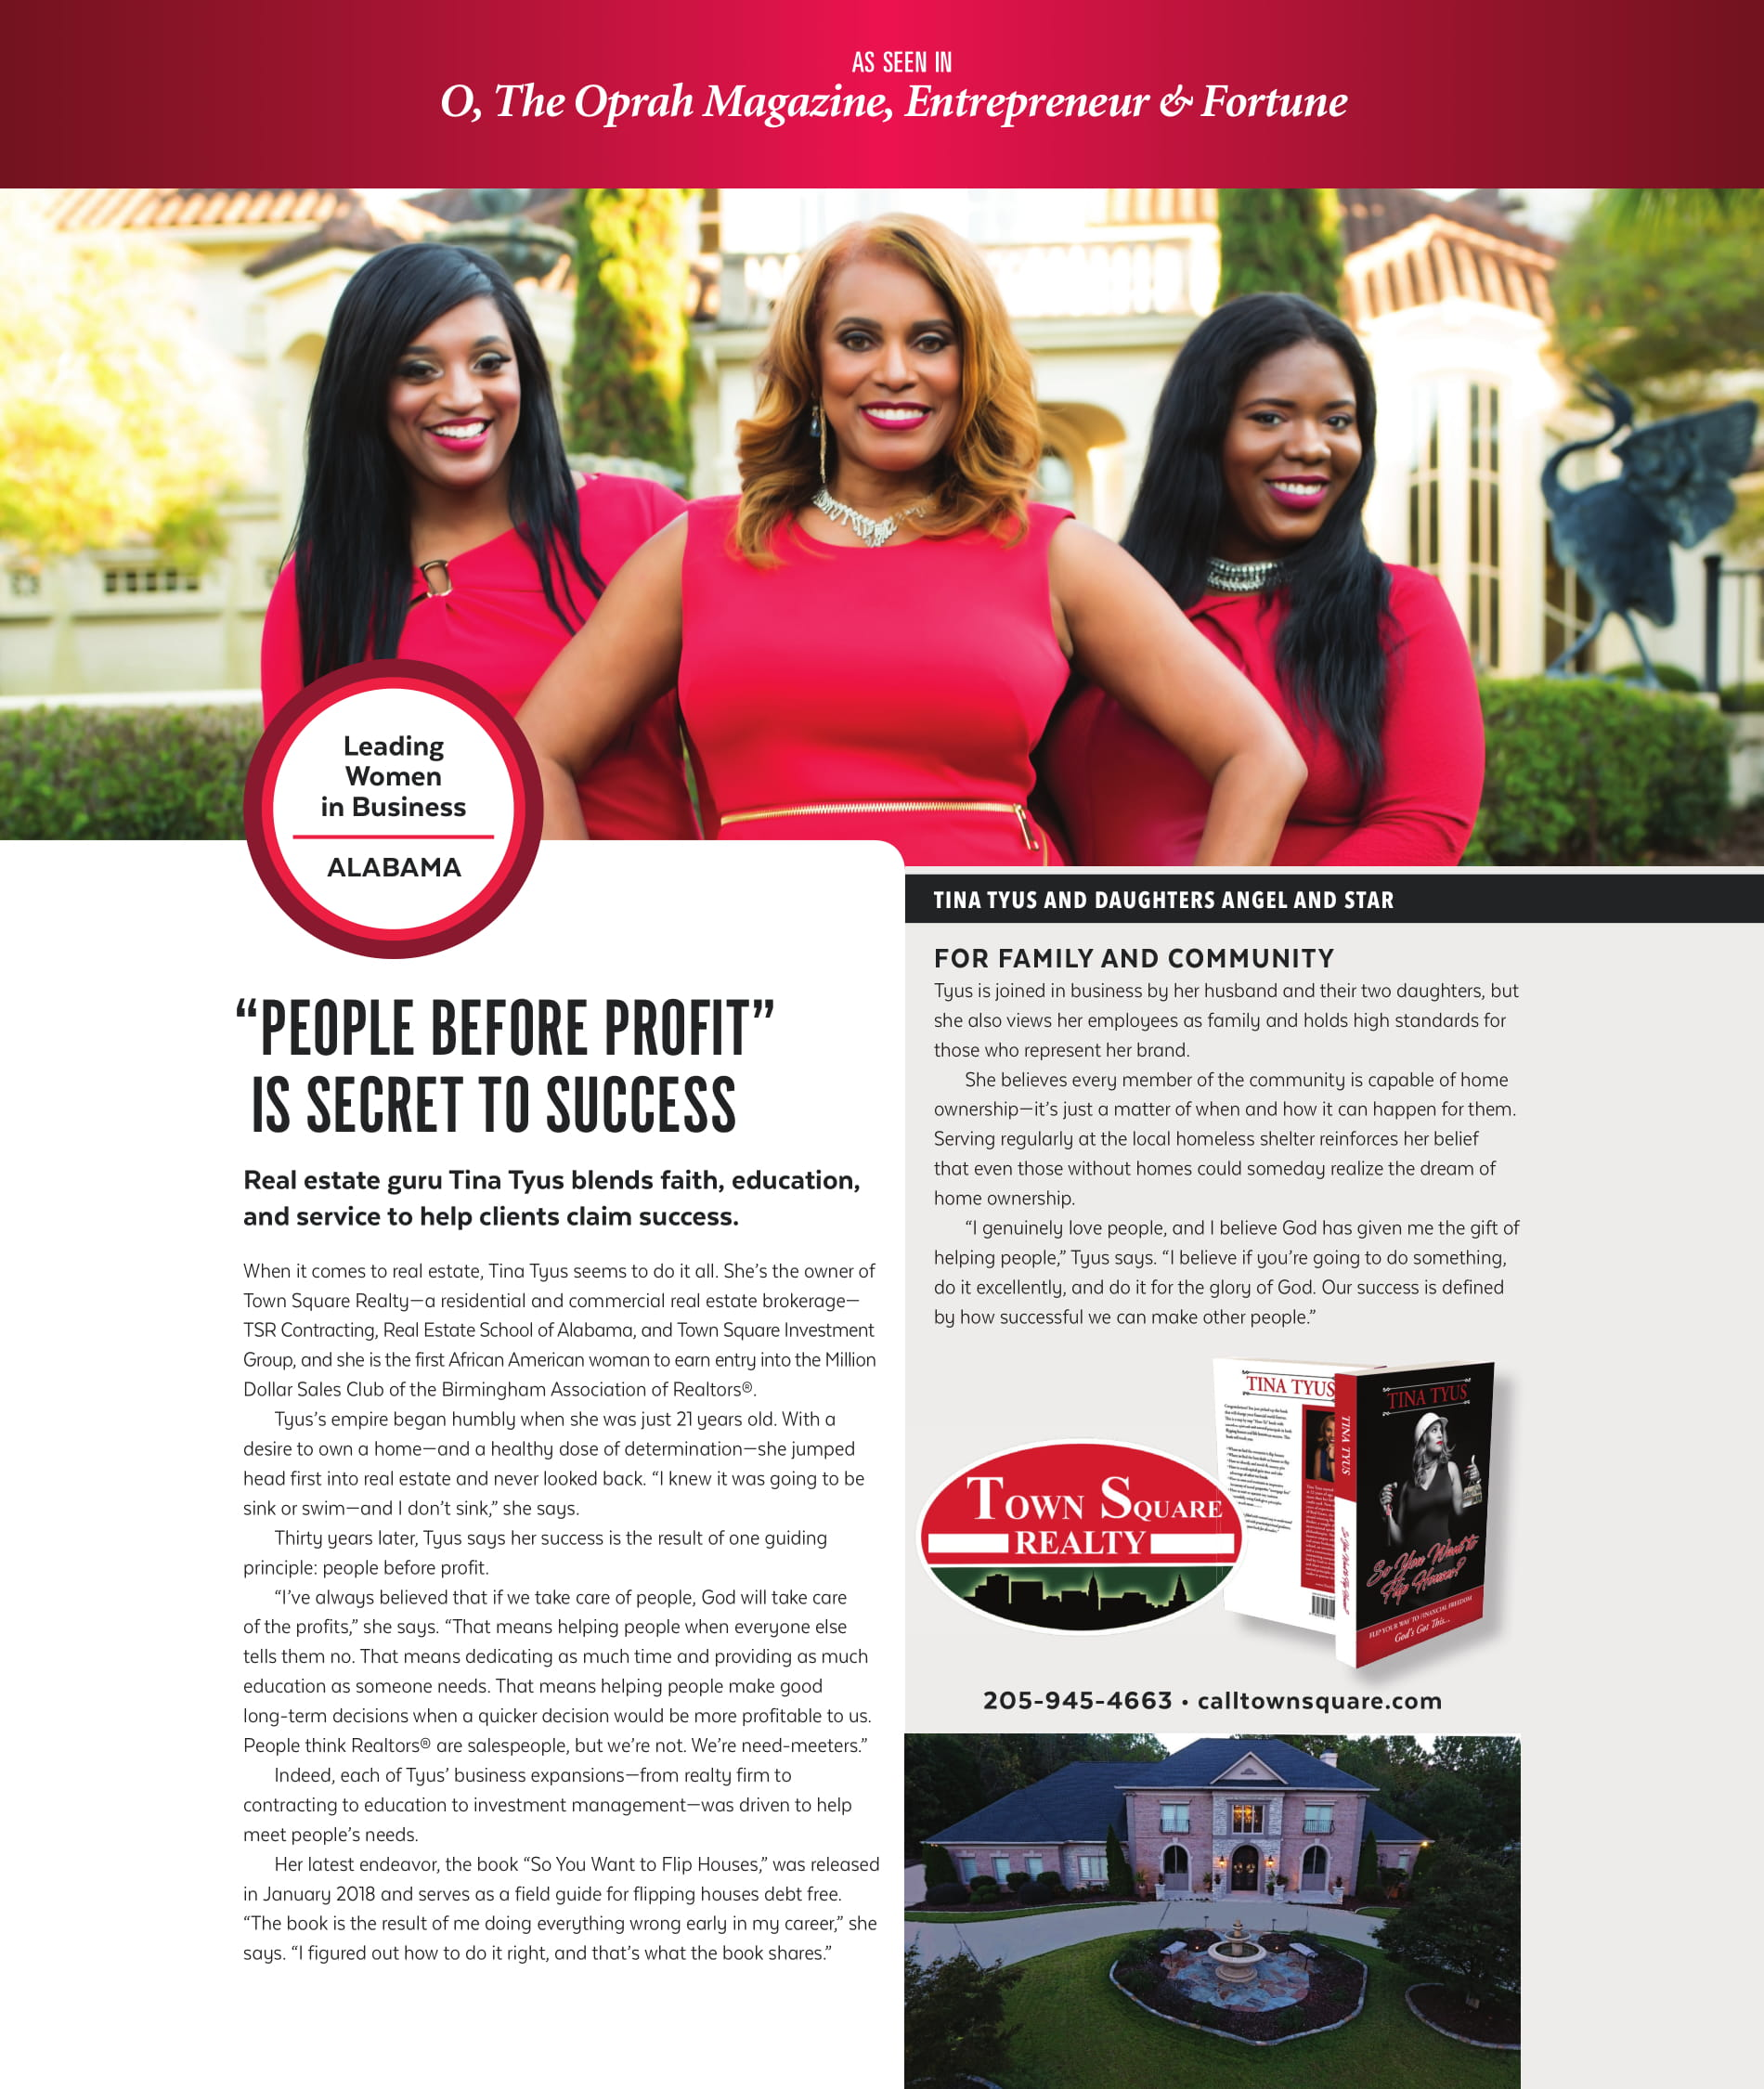 Tina Tyus, the owner of Town Square Realty, as featured in different popular magazines! O Magazine, Entrepreneur, Fortune, Top Agent